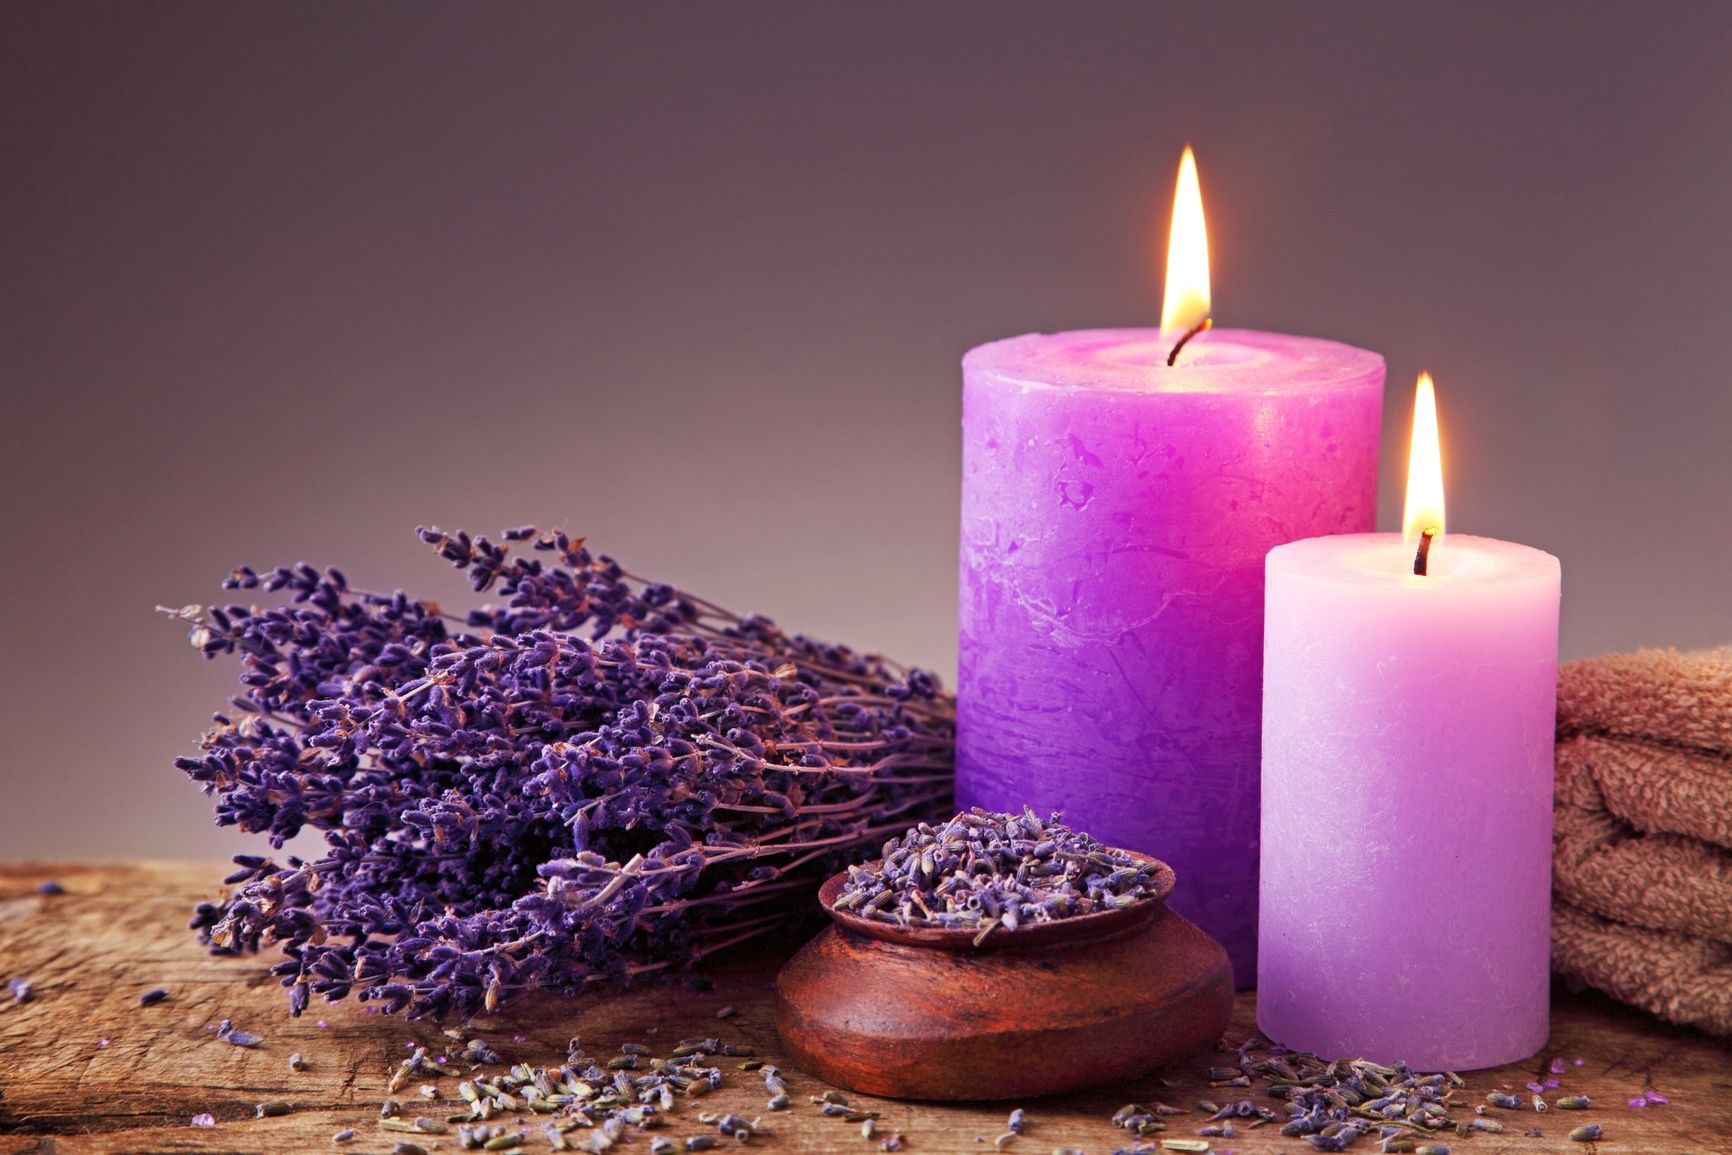 Aroma spa candles relax beauty candles spa aroma for Spa smelling candles